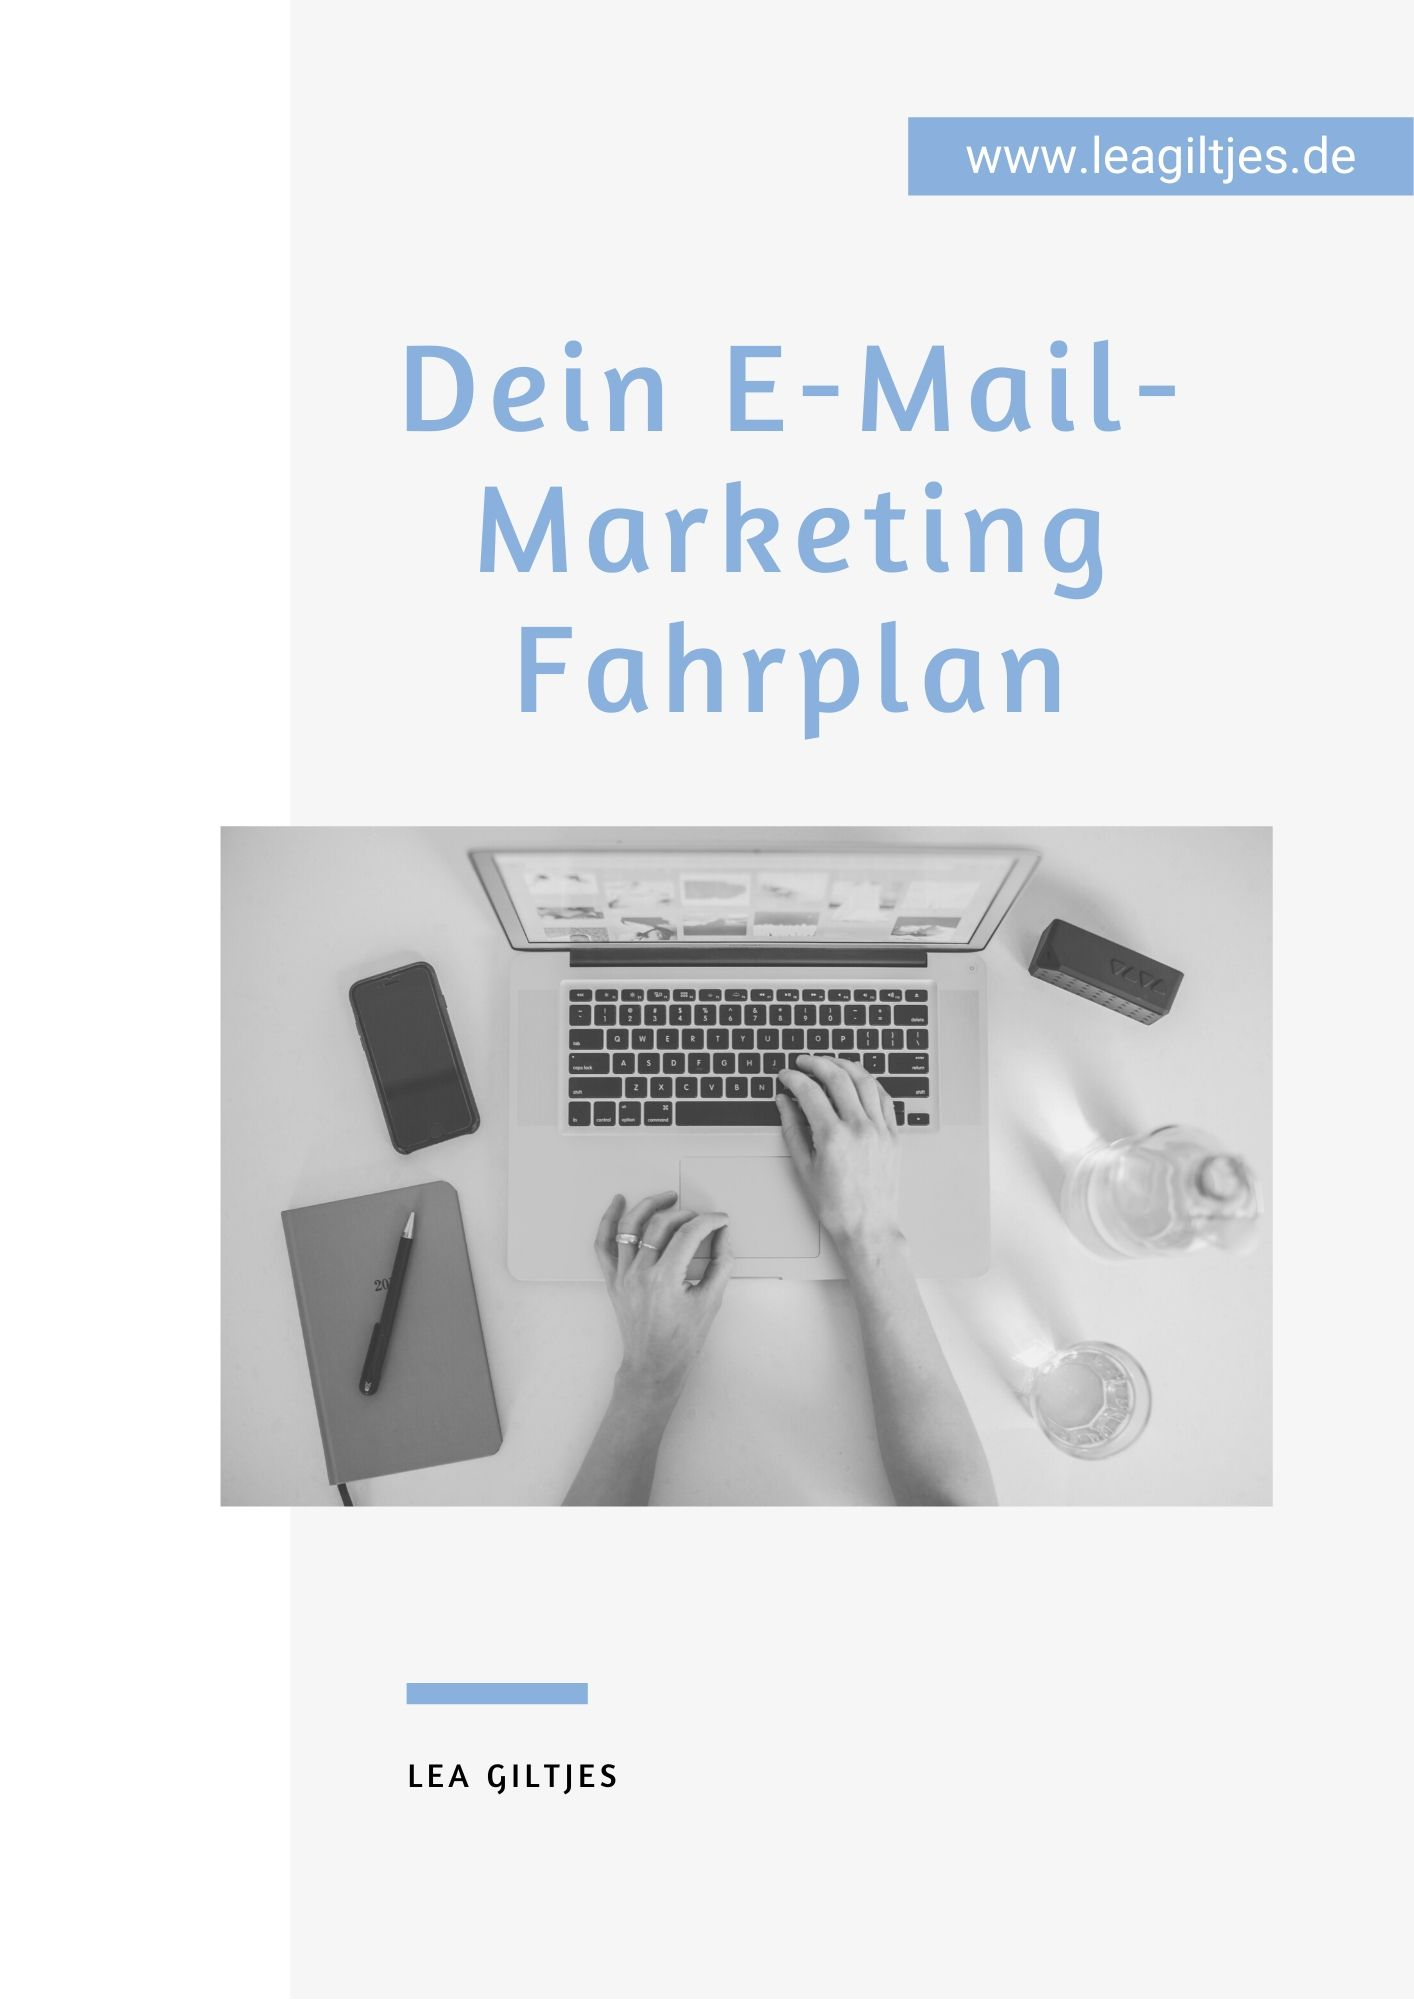 E-Mail-Marketing Fahrplan